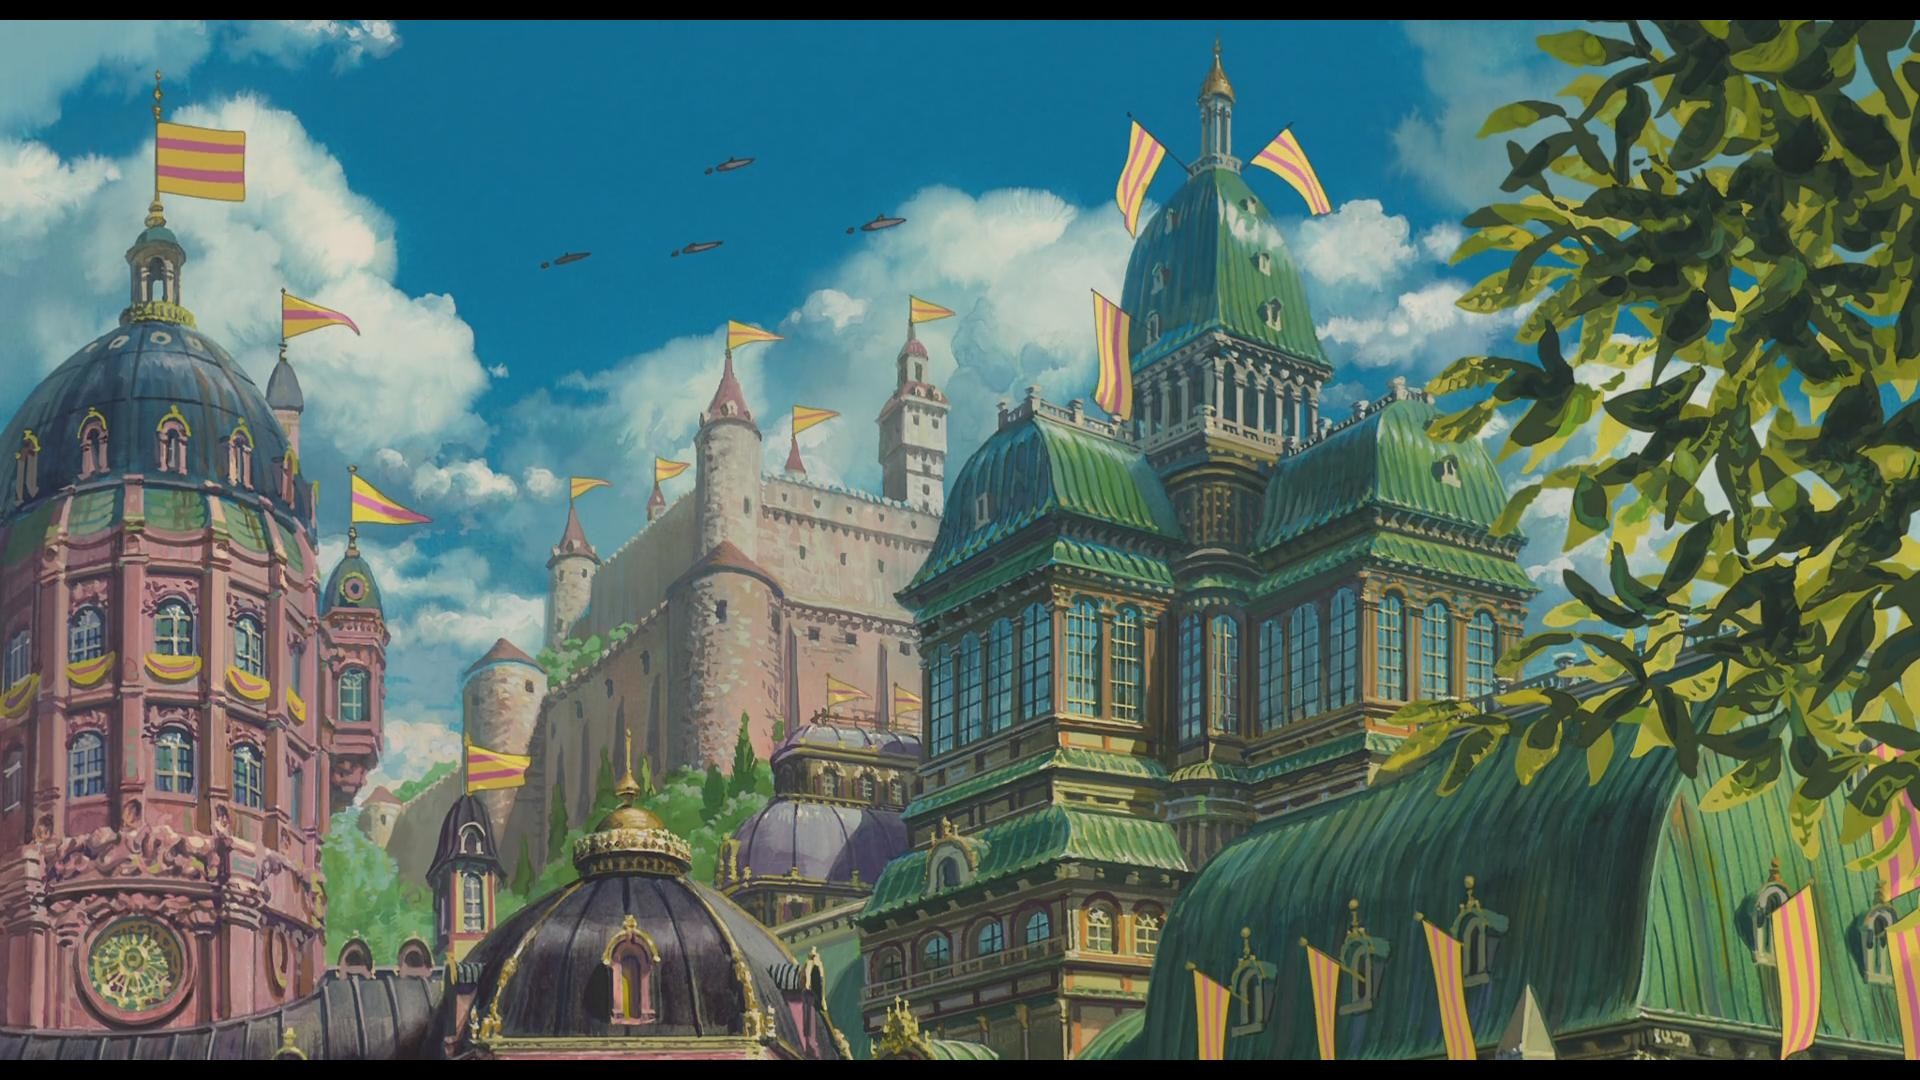 1920x1080 howl's moving castle wallpaper images (8) - HD Wallpapers Buzz